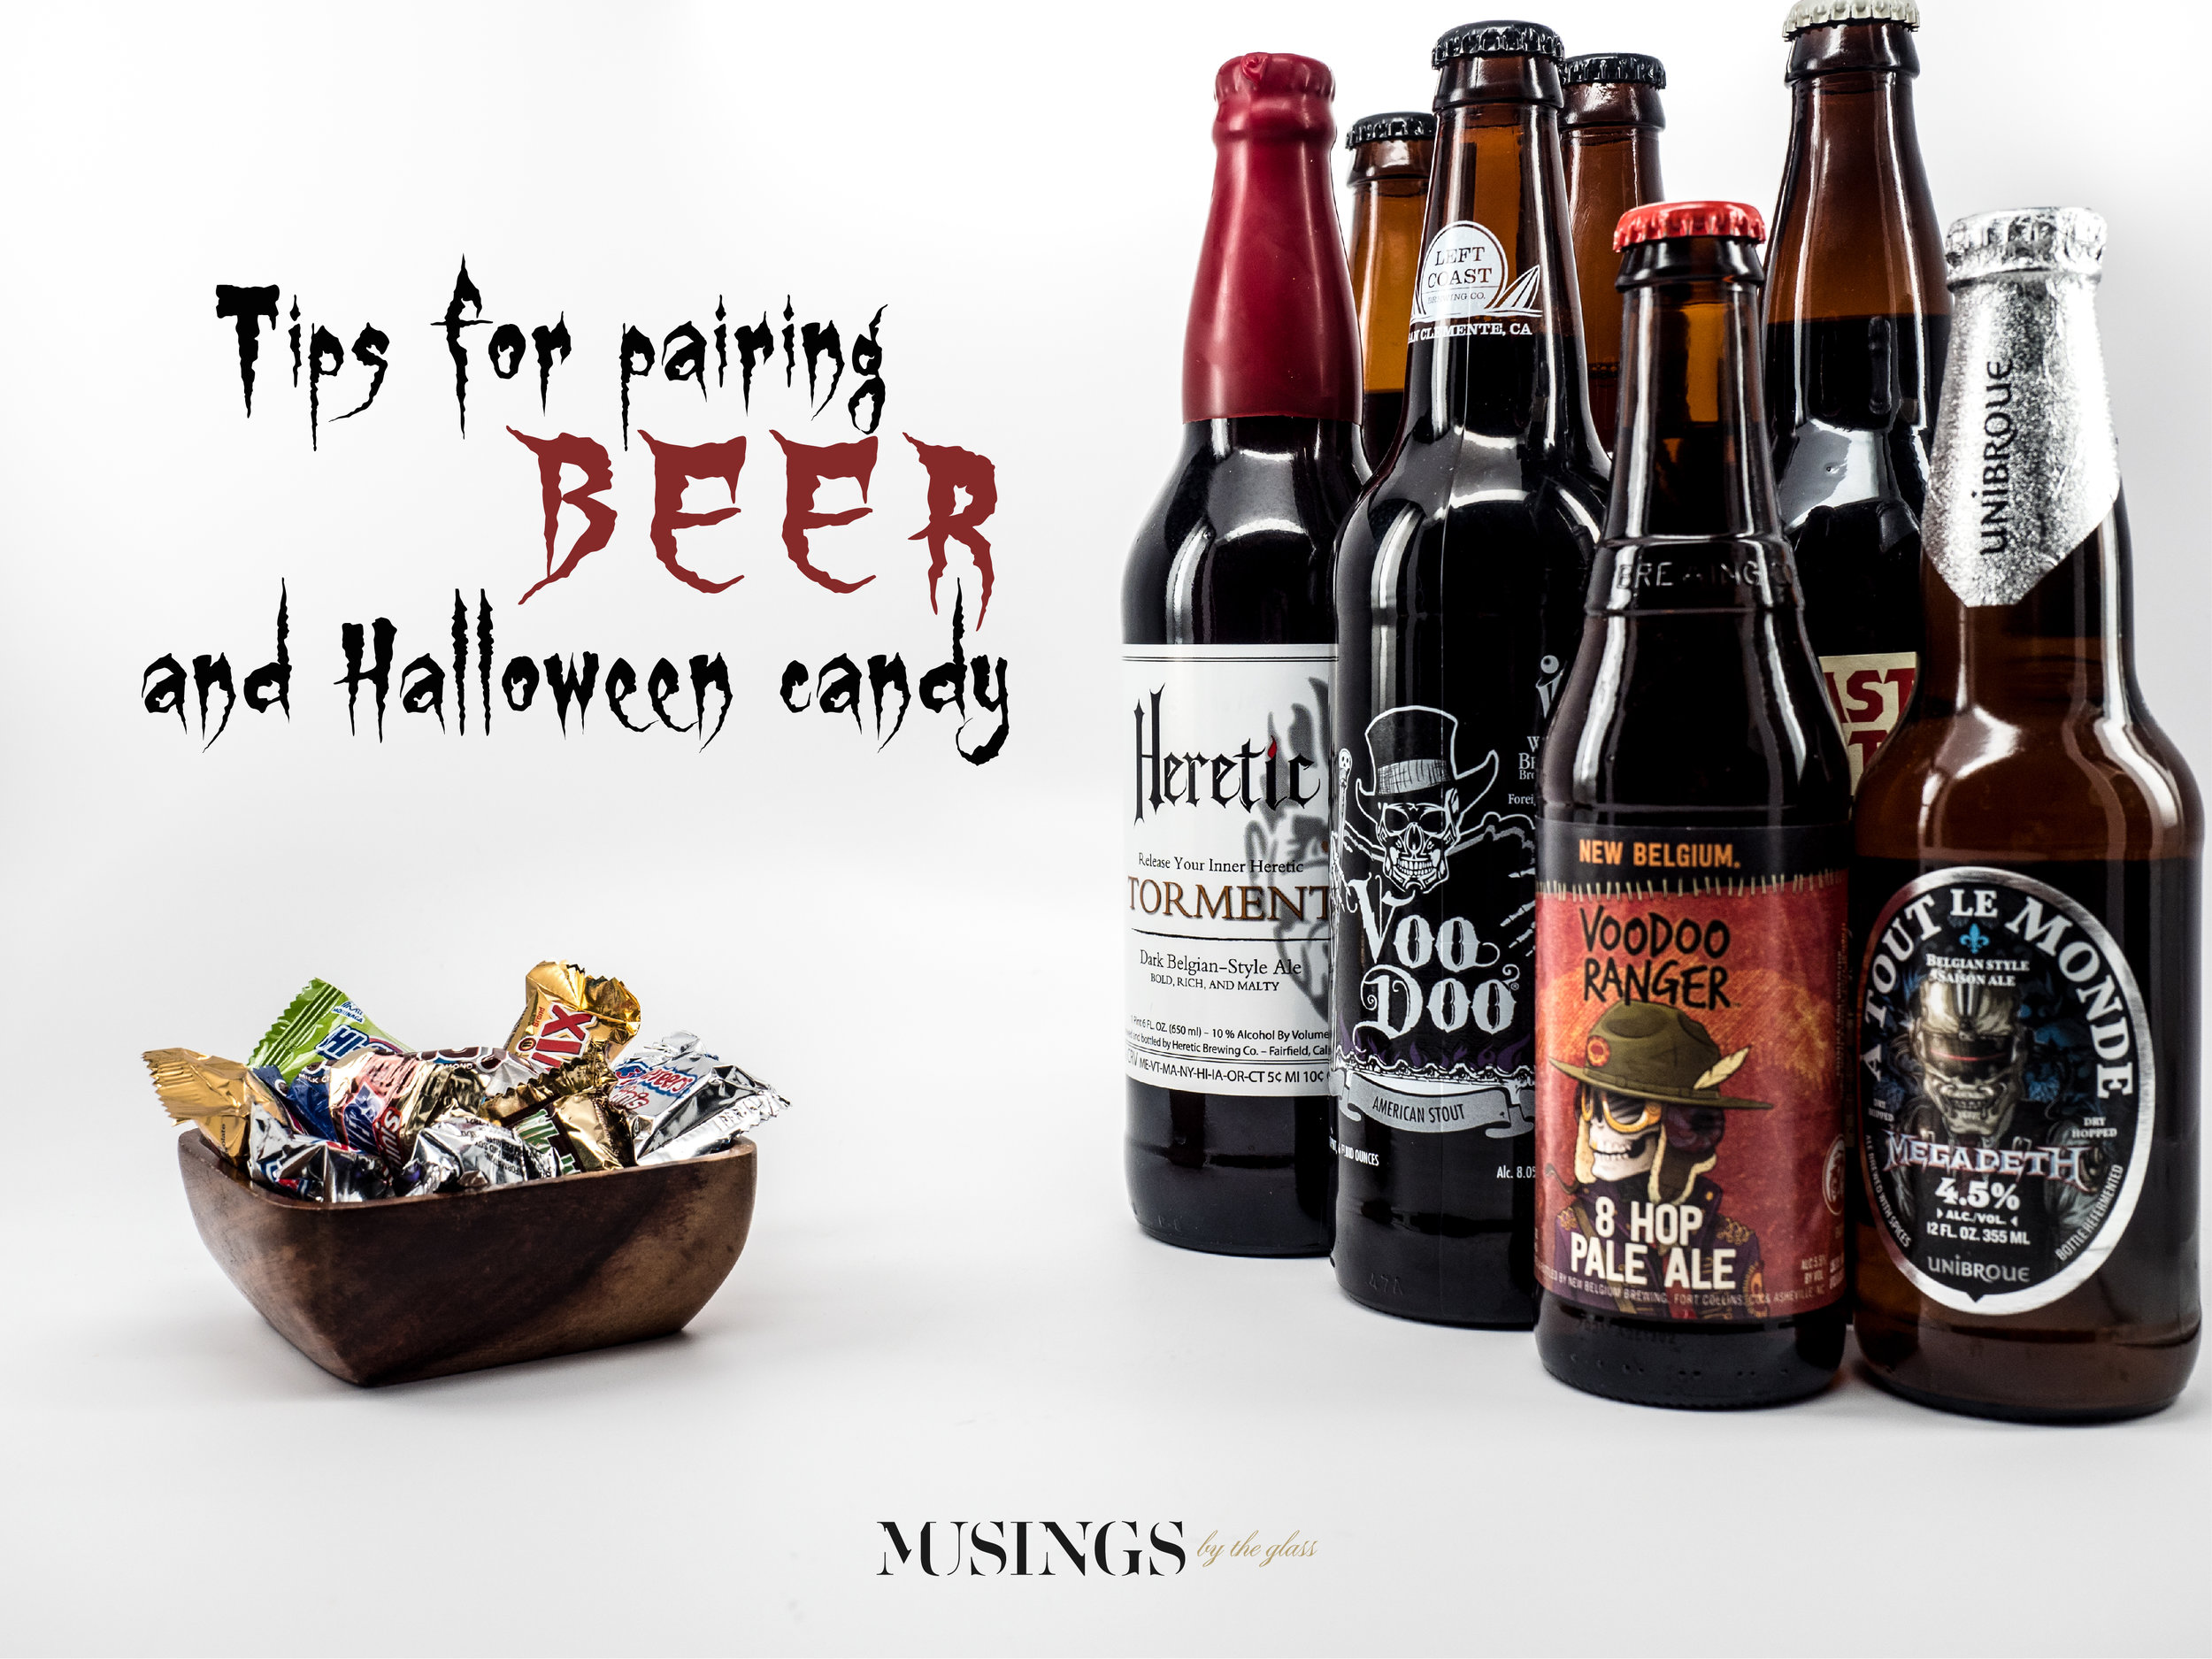 Musings by the Glass - Pairing Beer with Halloween Candy - The Barley-Confection Synthesis Beer Lineup